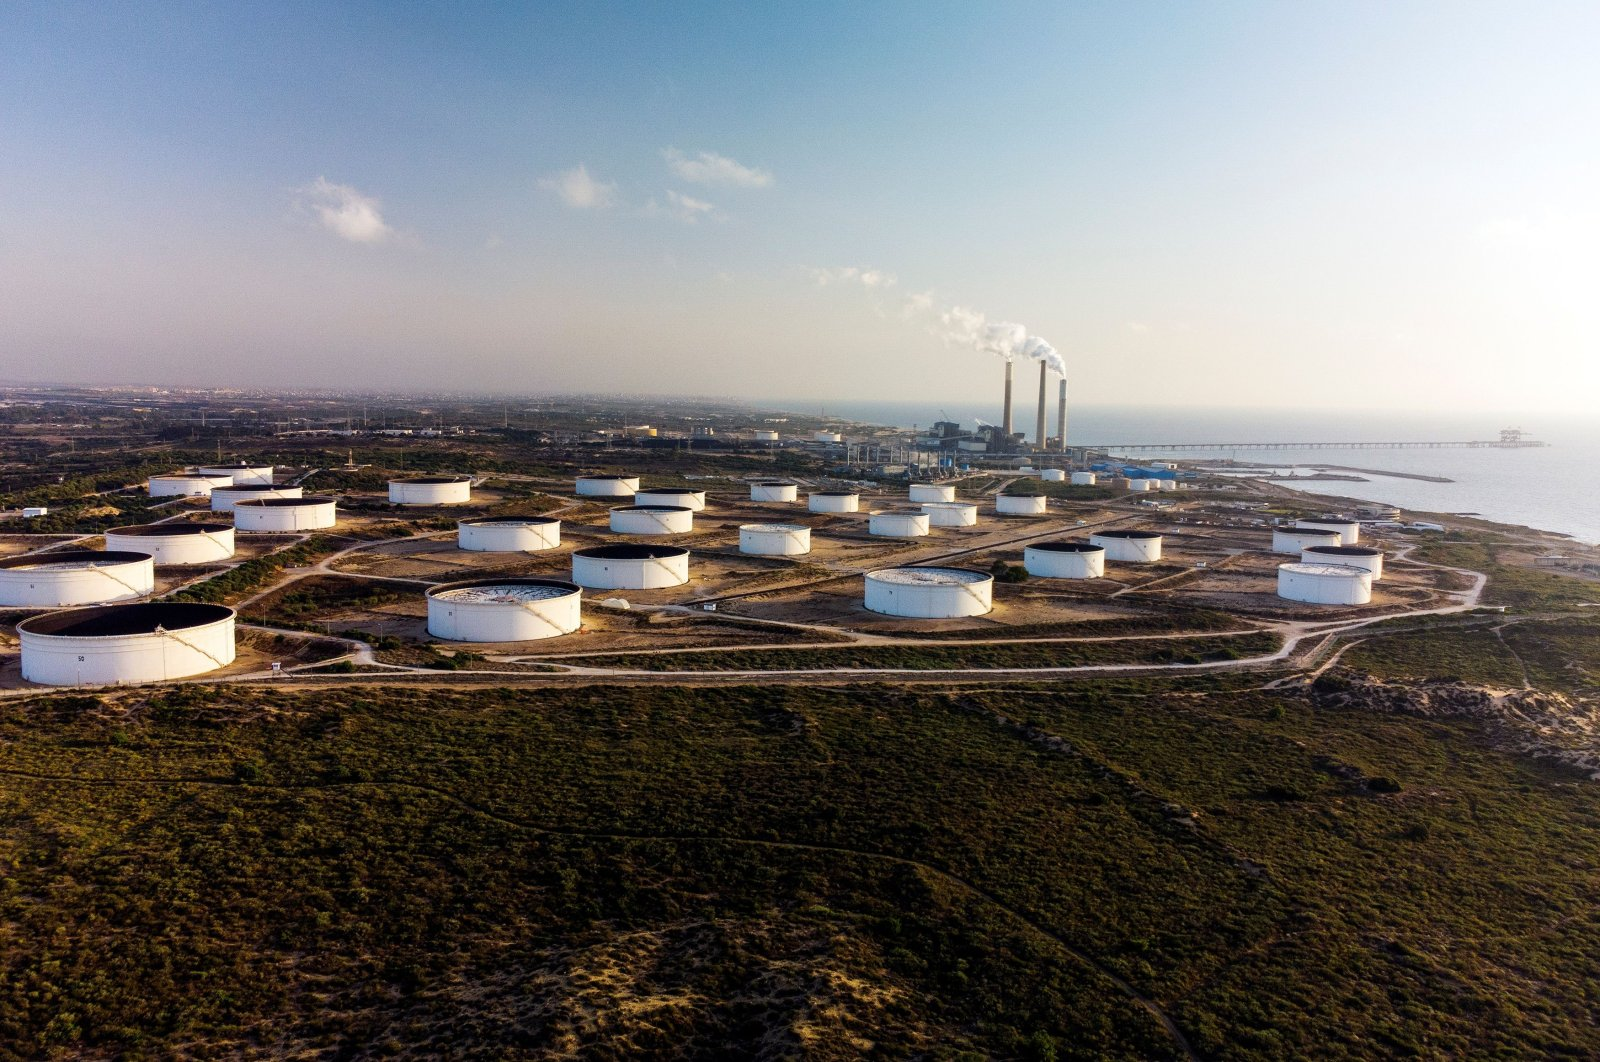 An aerial view shows storage tanks at the oil terminal of Europe Asia Pipeline Company (EAPC) off the Mediterranean coast in Ashkelon, Israel, June 10, 2021. (Reuters Photo)